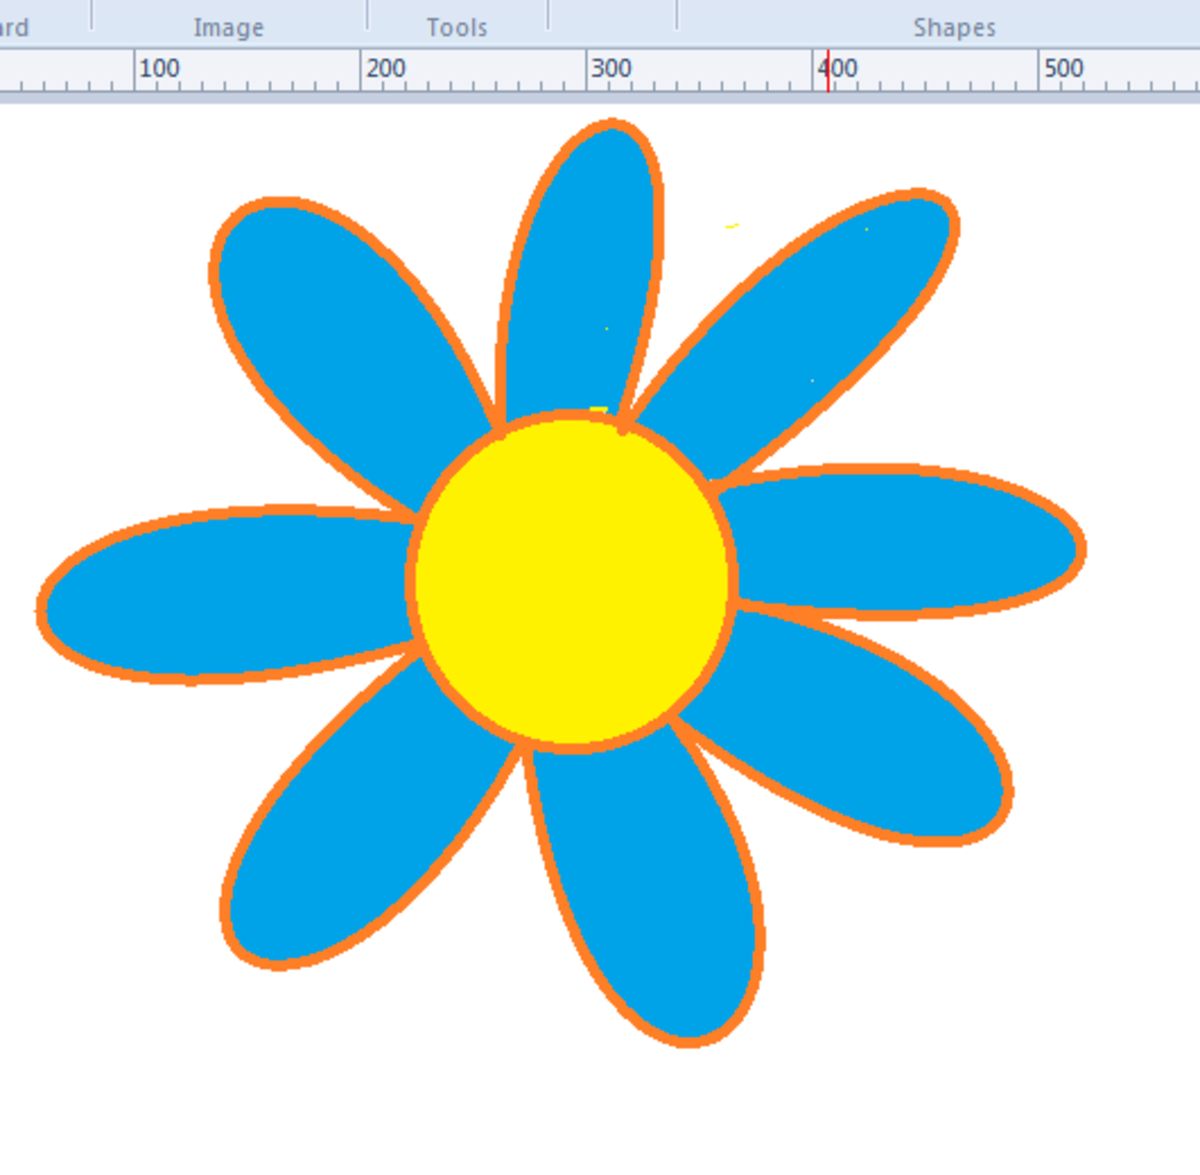 Fill each petal with color using the Bucket tool.